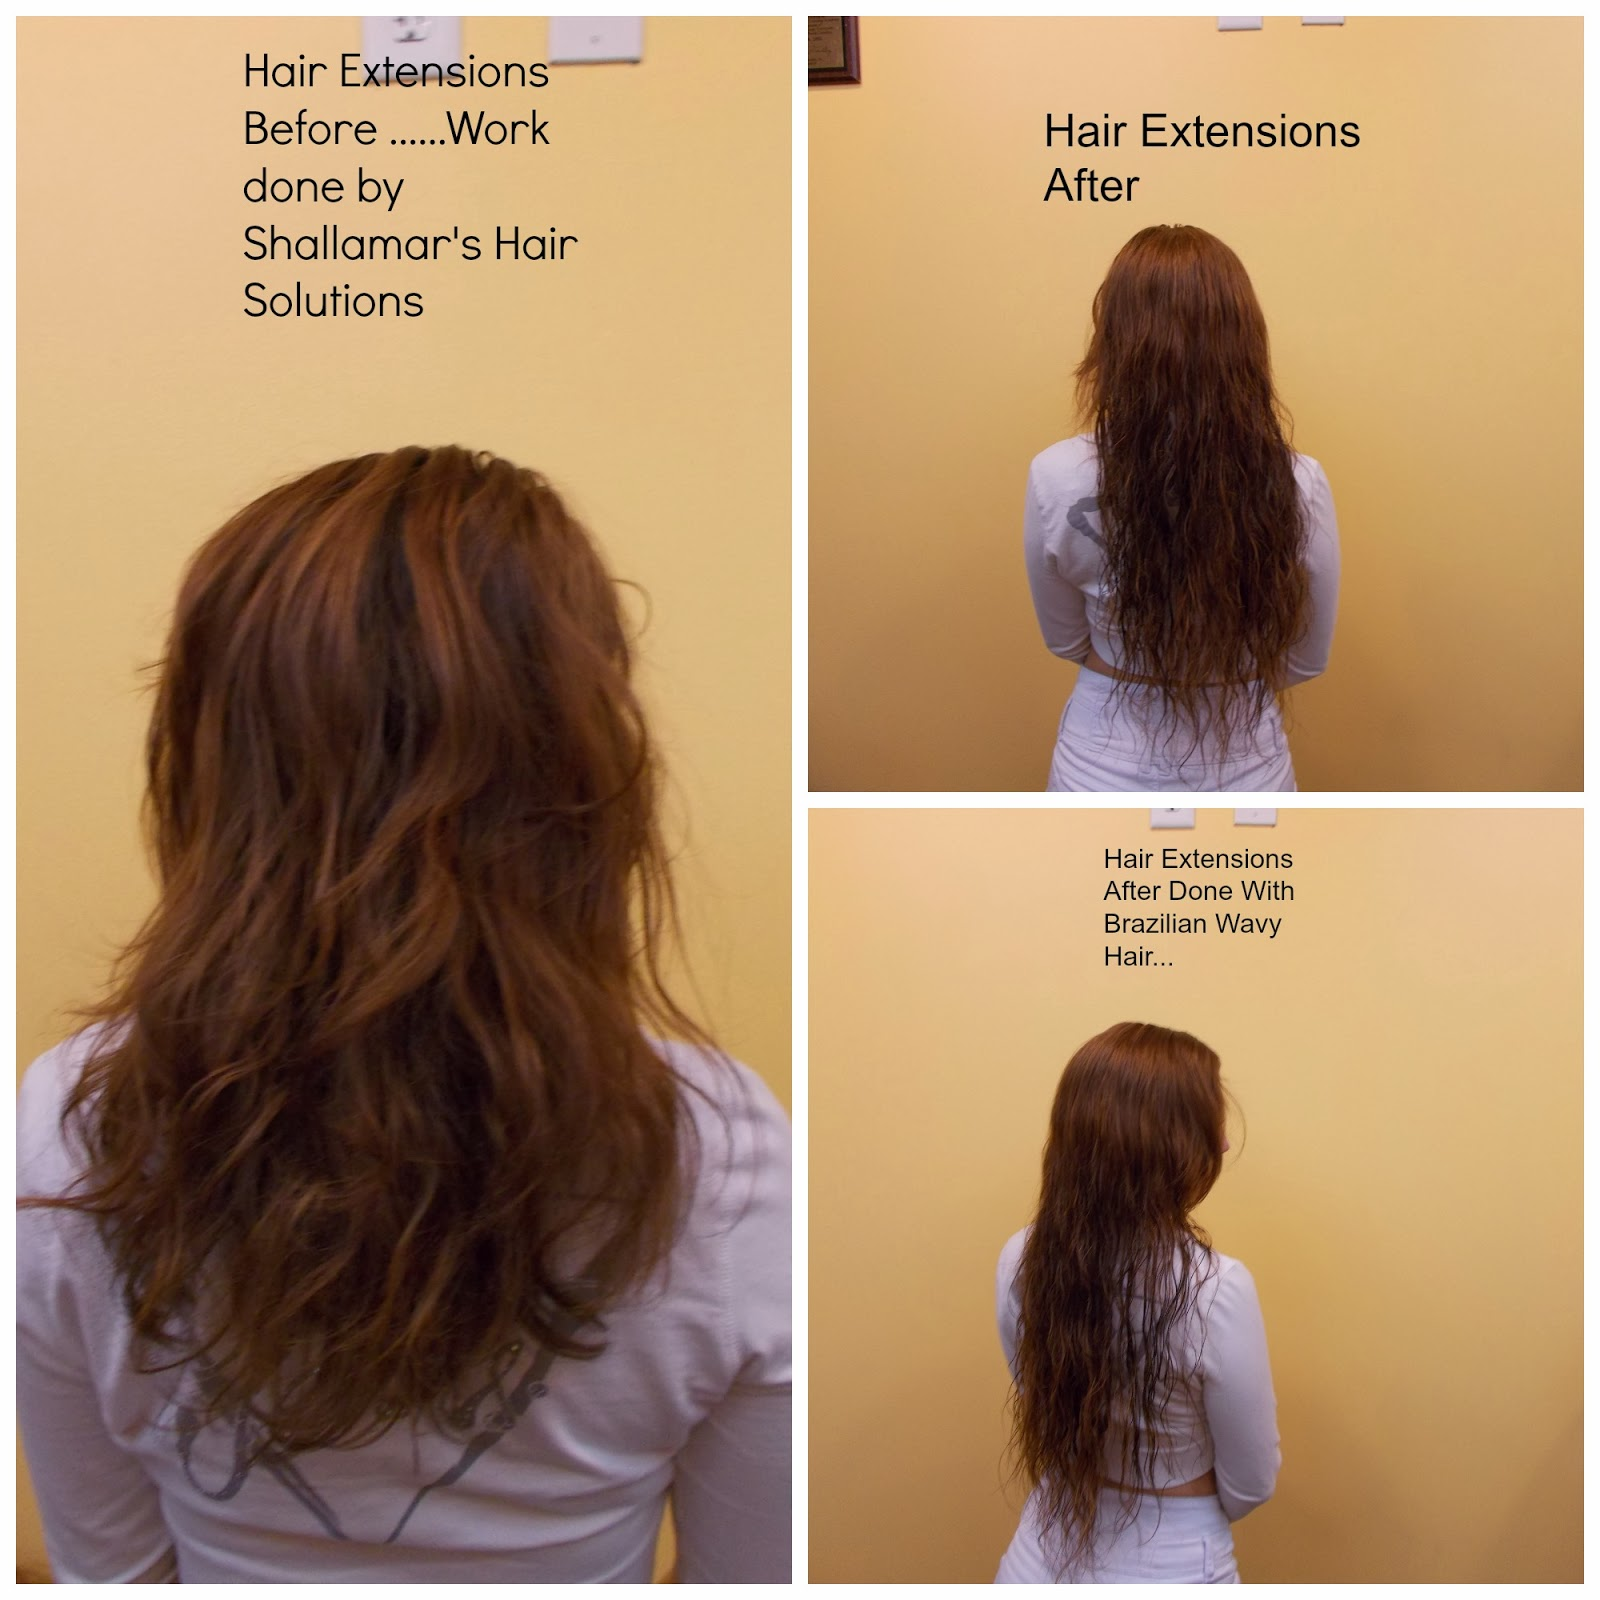 Weave specialist in orlando shallamars hair sollutions hair weaves and hair extensions are the same a weave specialist is also an extension specialist it really depends on who you are talking to pmusecretfo Image collections